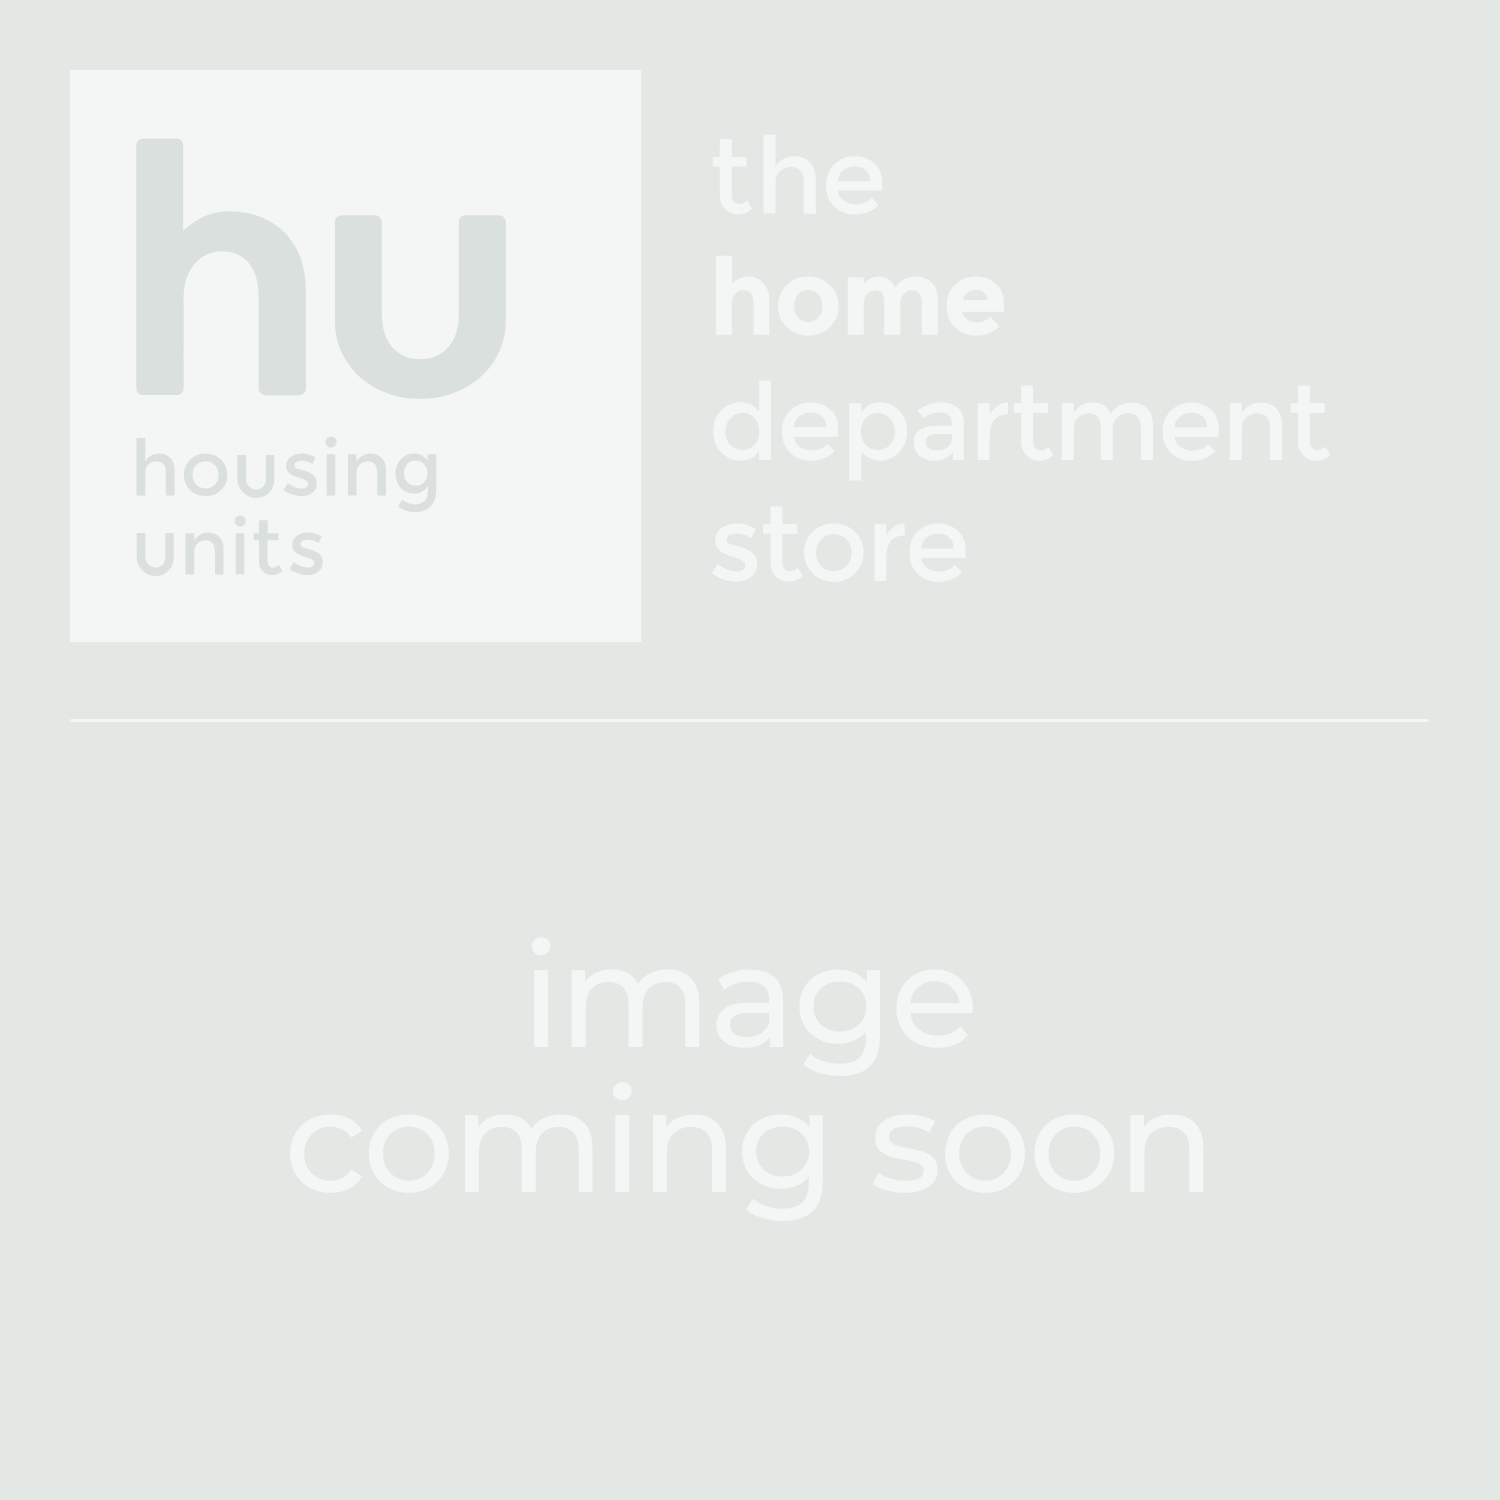 Breville Flow Cream 4 Slice Toaster | Housing Units